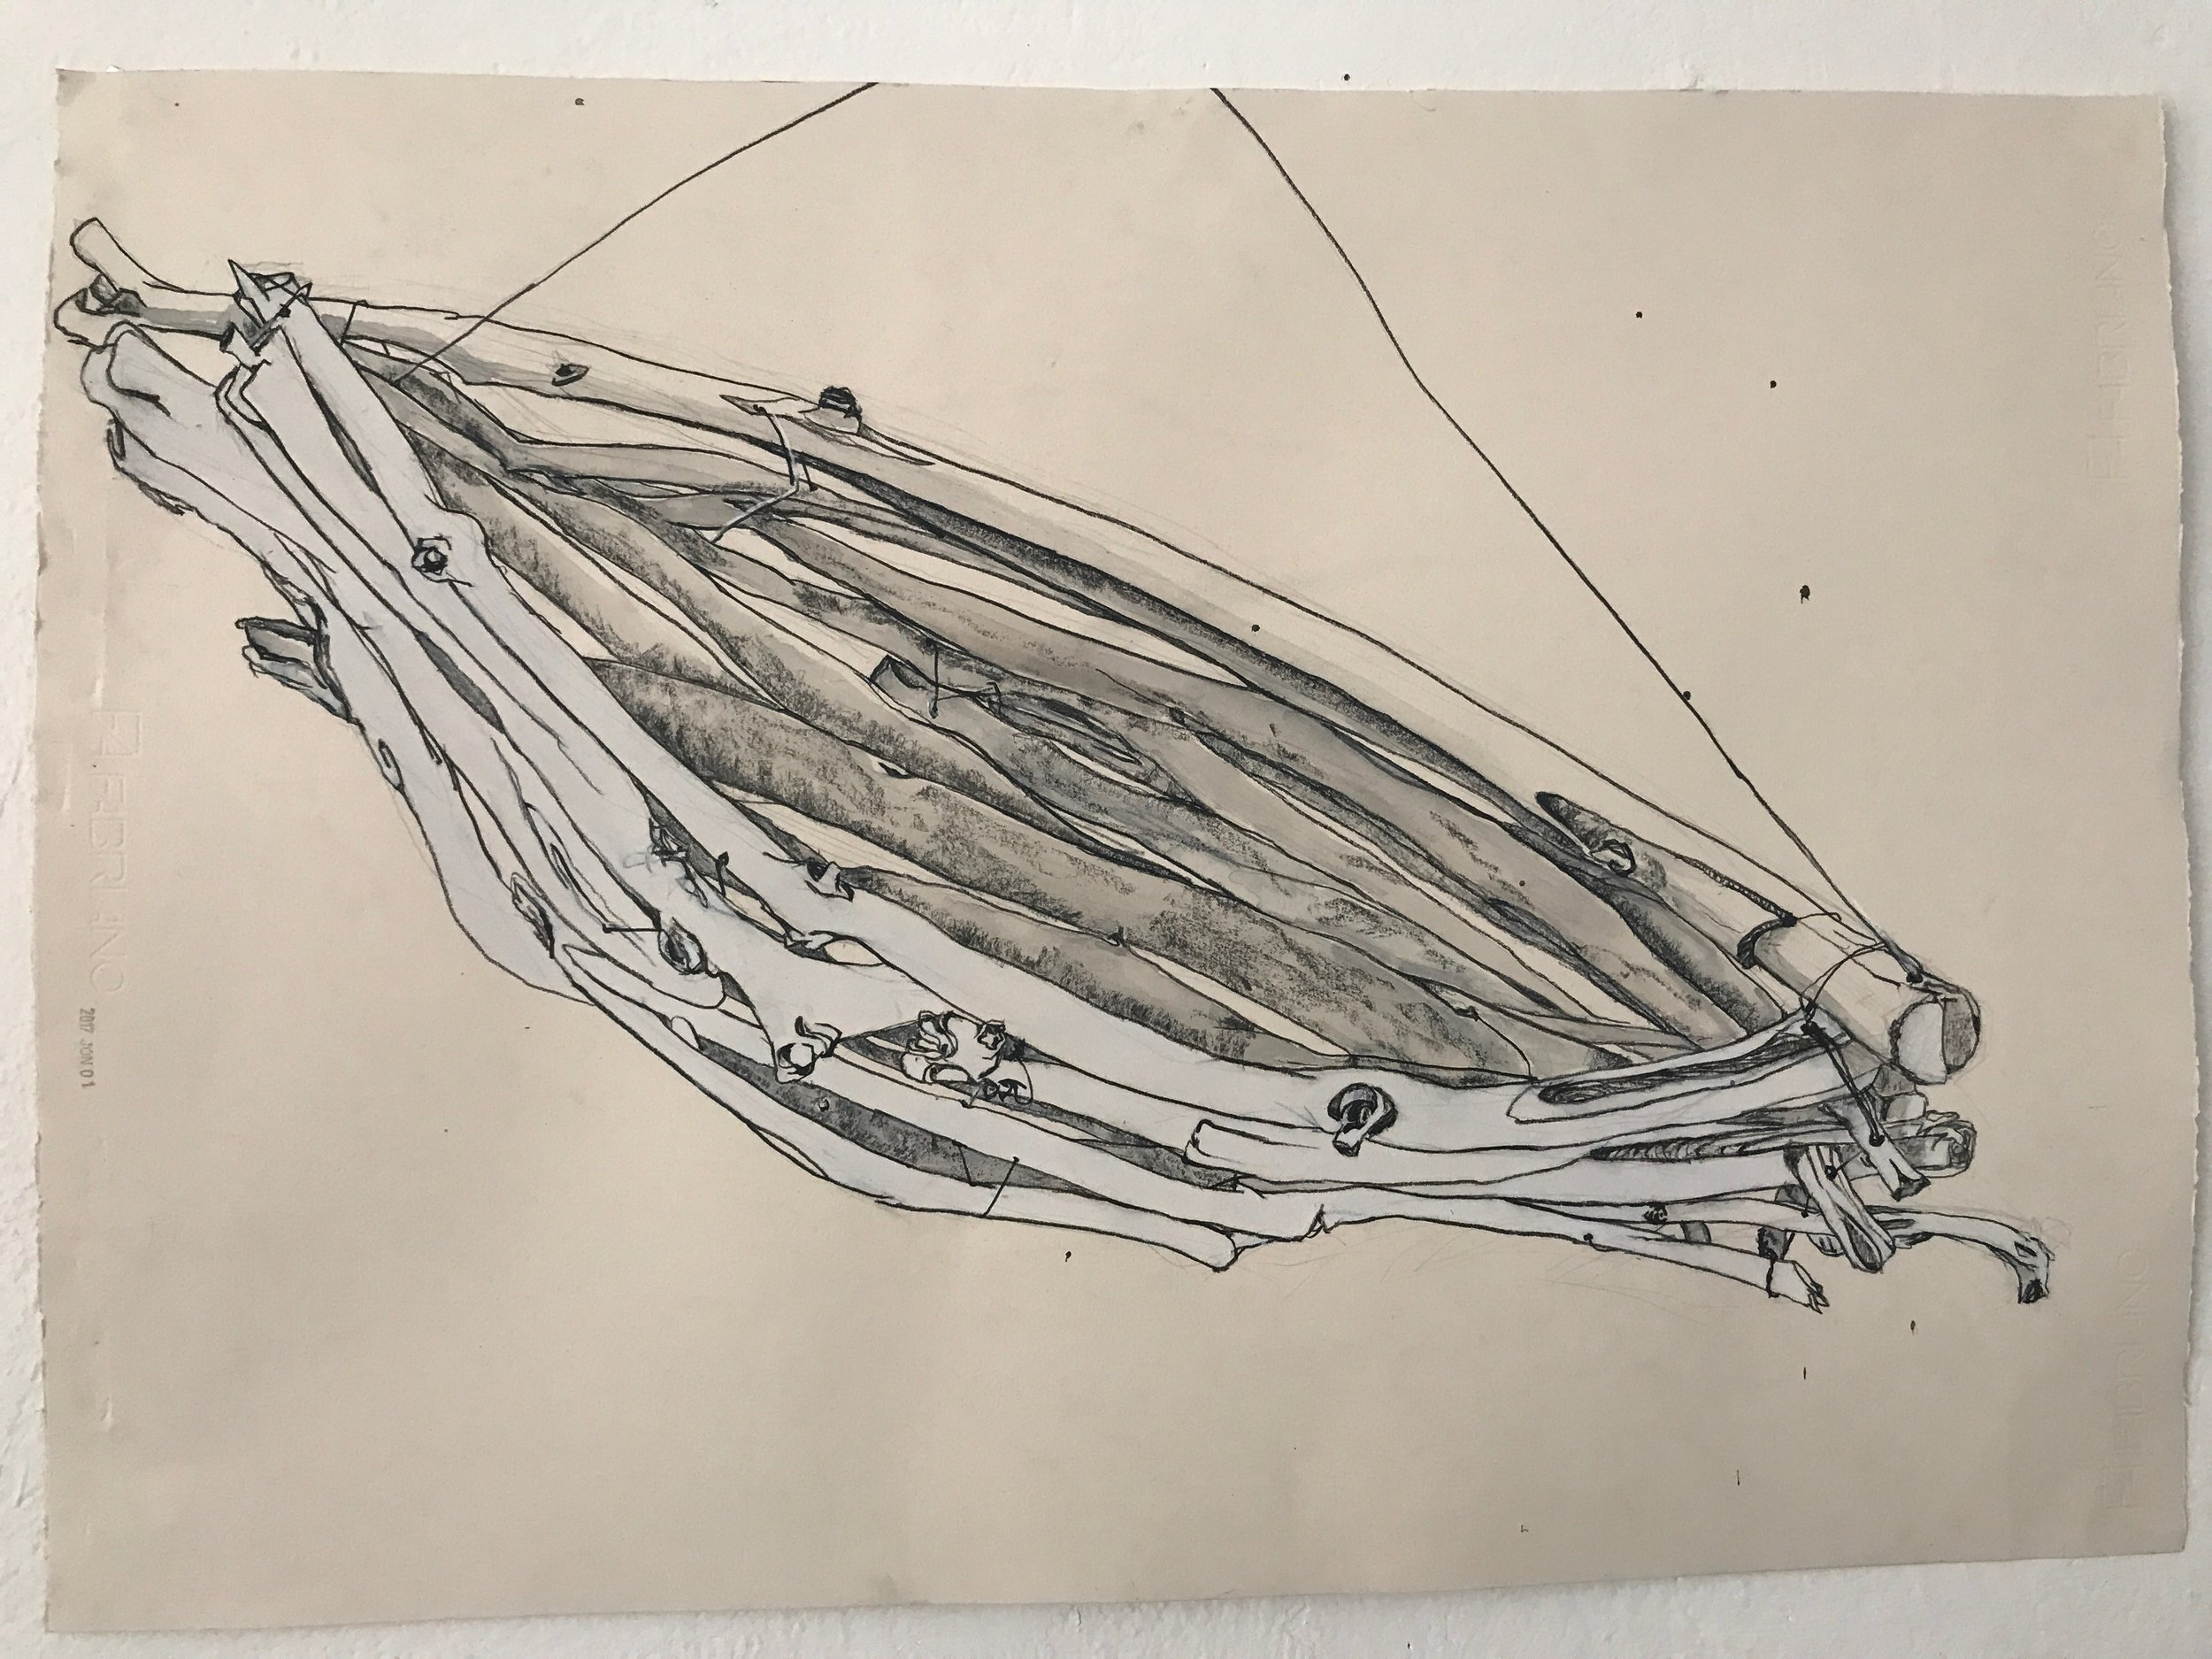 Documentary drawing of one of the boat elements from the installation.